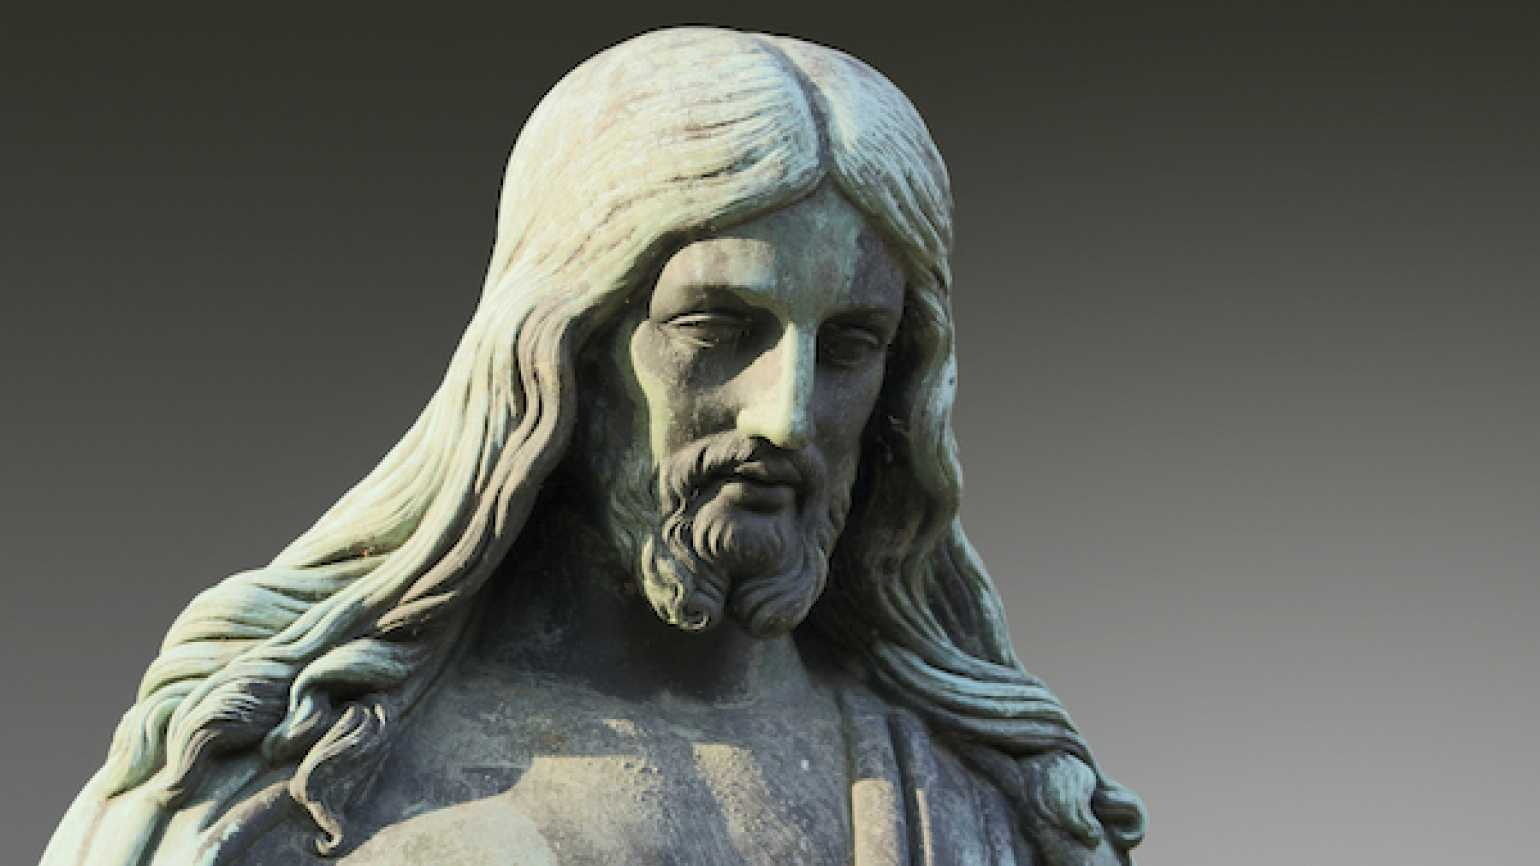 How a statue of Jesus revived a weary, lost woman.